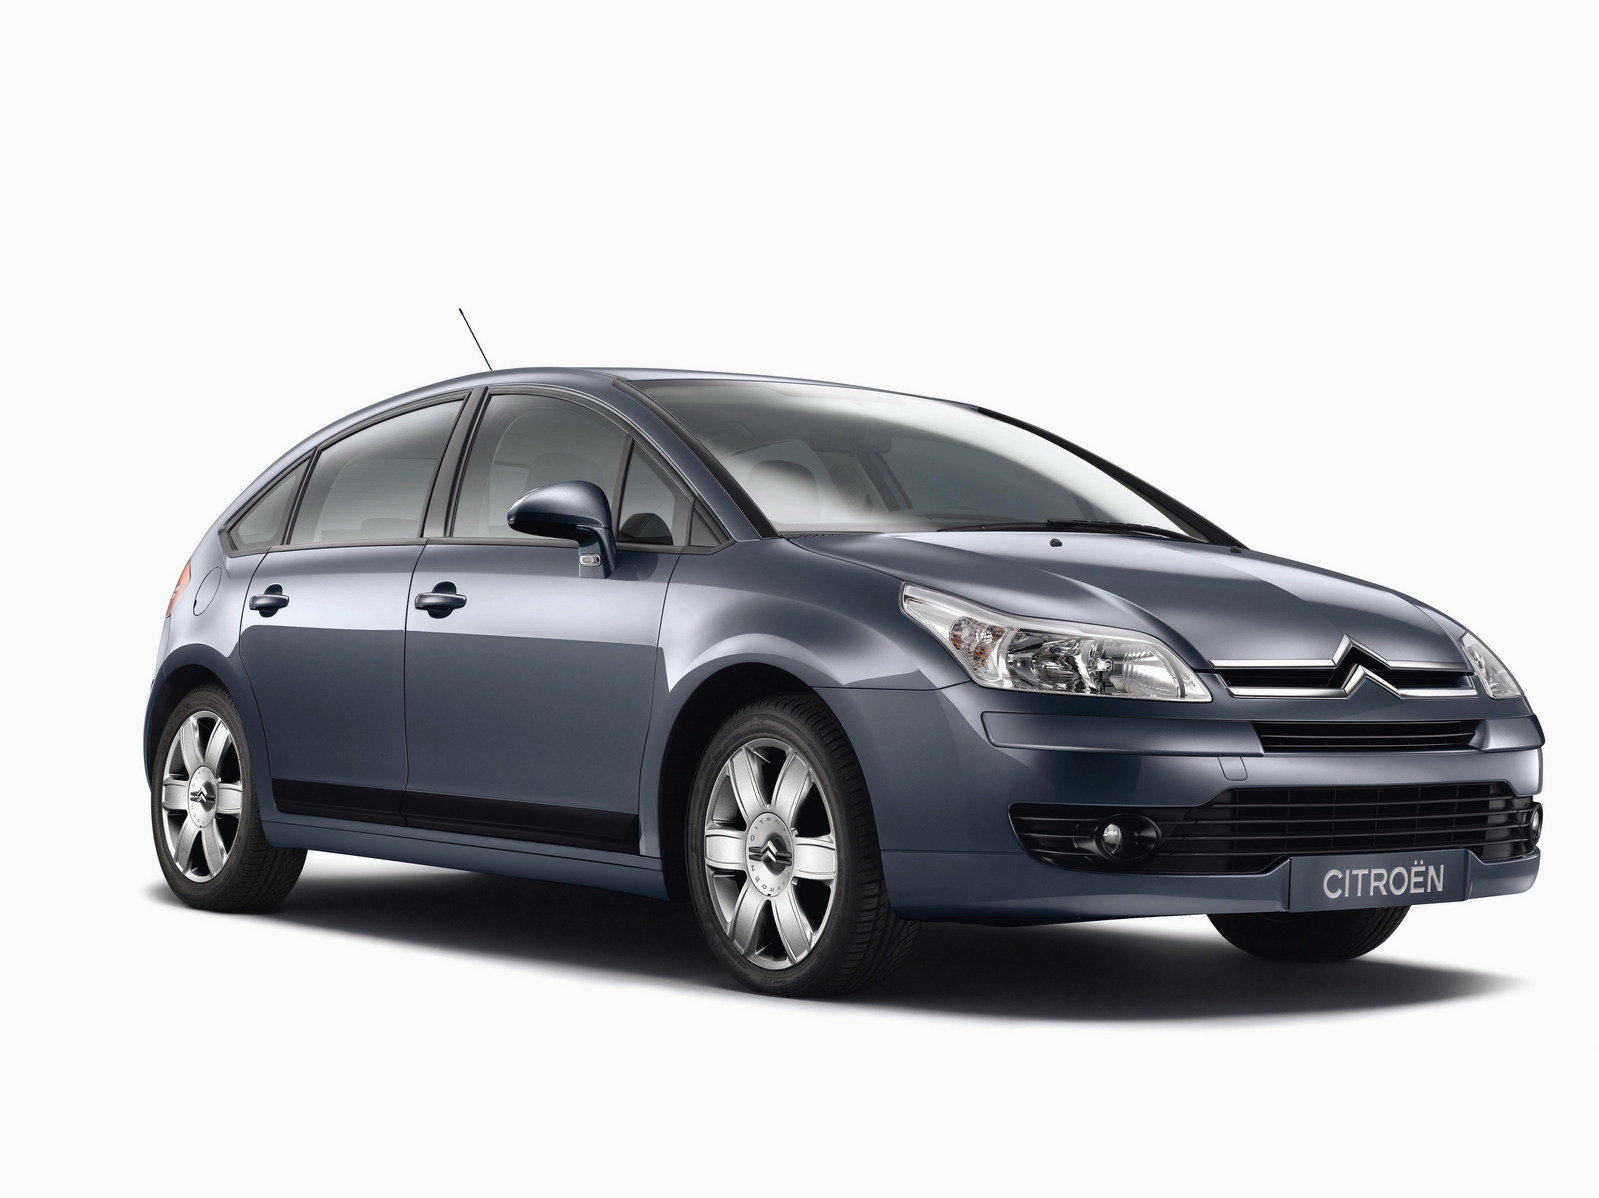 2007 citroen c4 sillage picture 166517 car review top speed. Black Bedroom Furniture Sets. Home Design Ideas